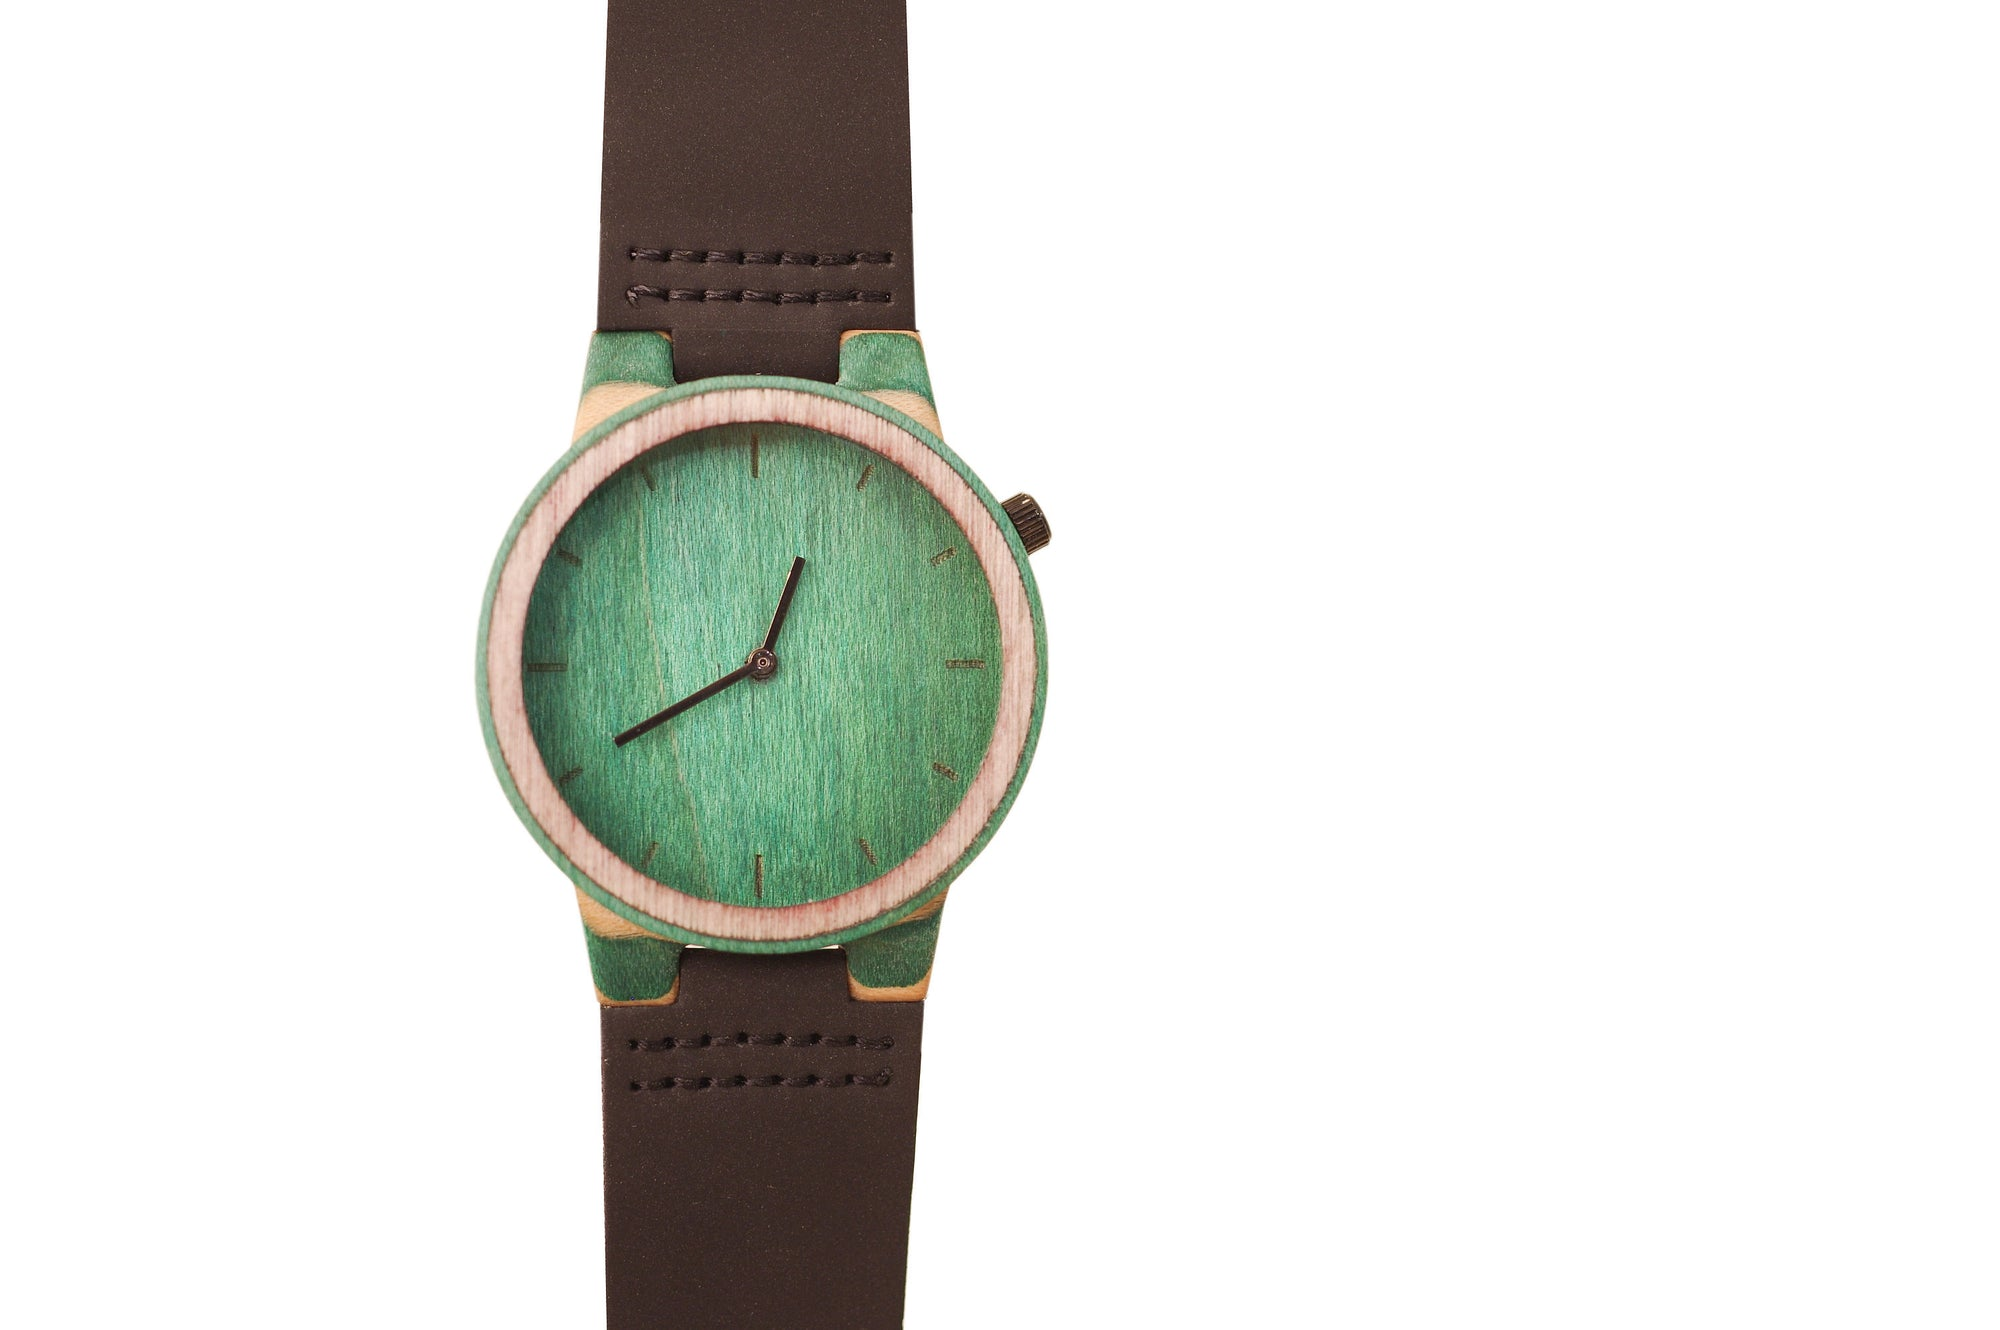 Montre 7PLIS skateboard recyclé #193